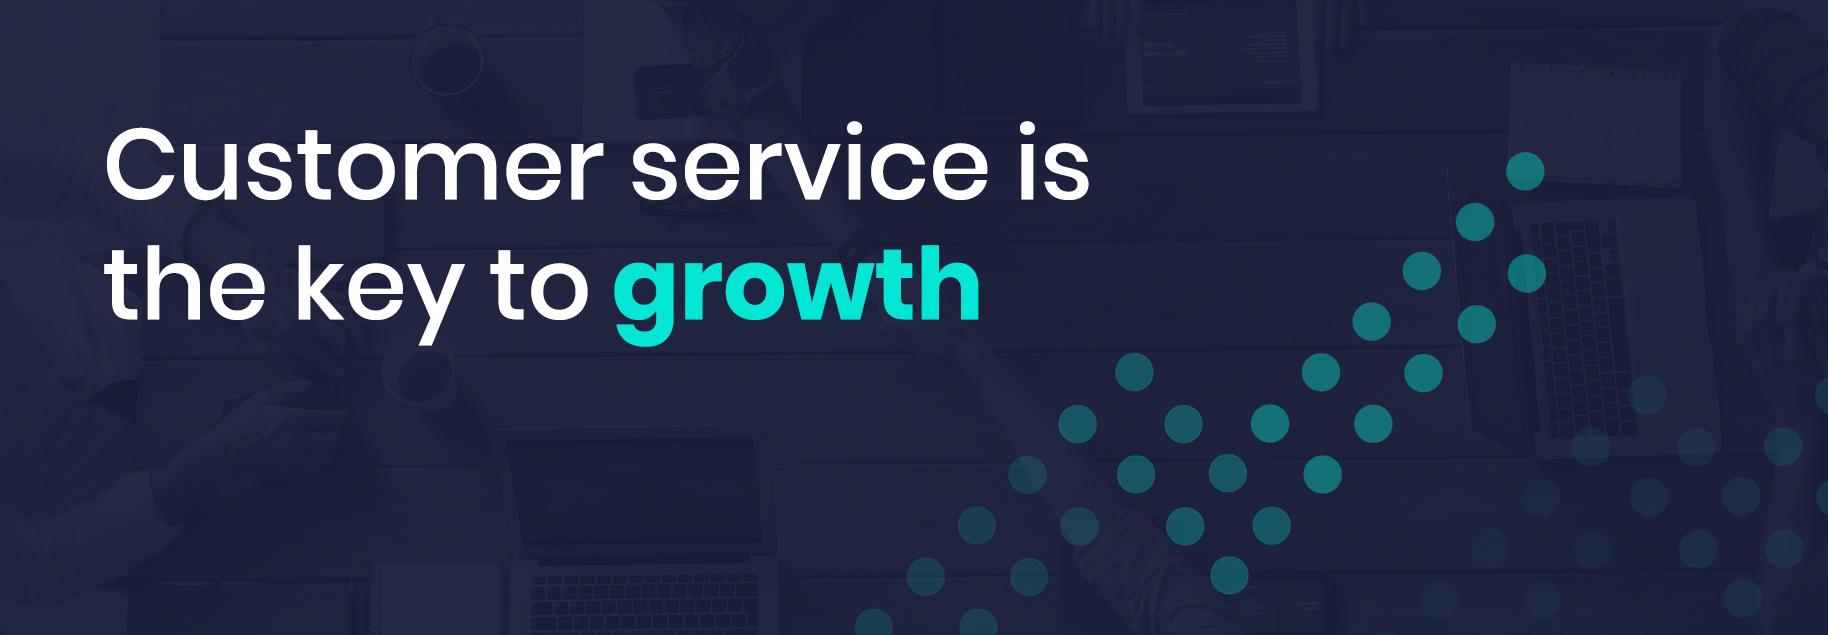 Customer service is the key to growth